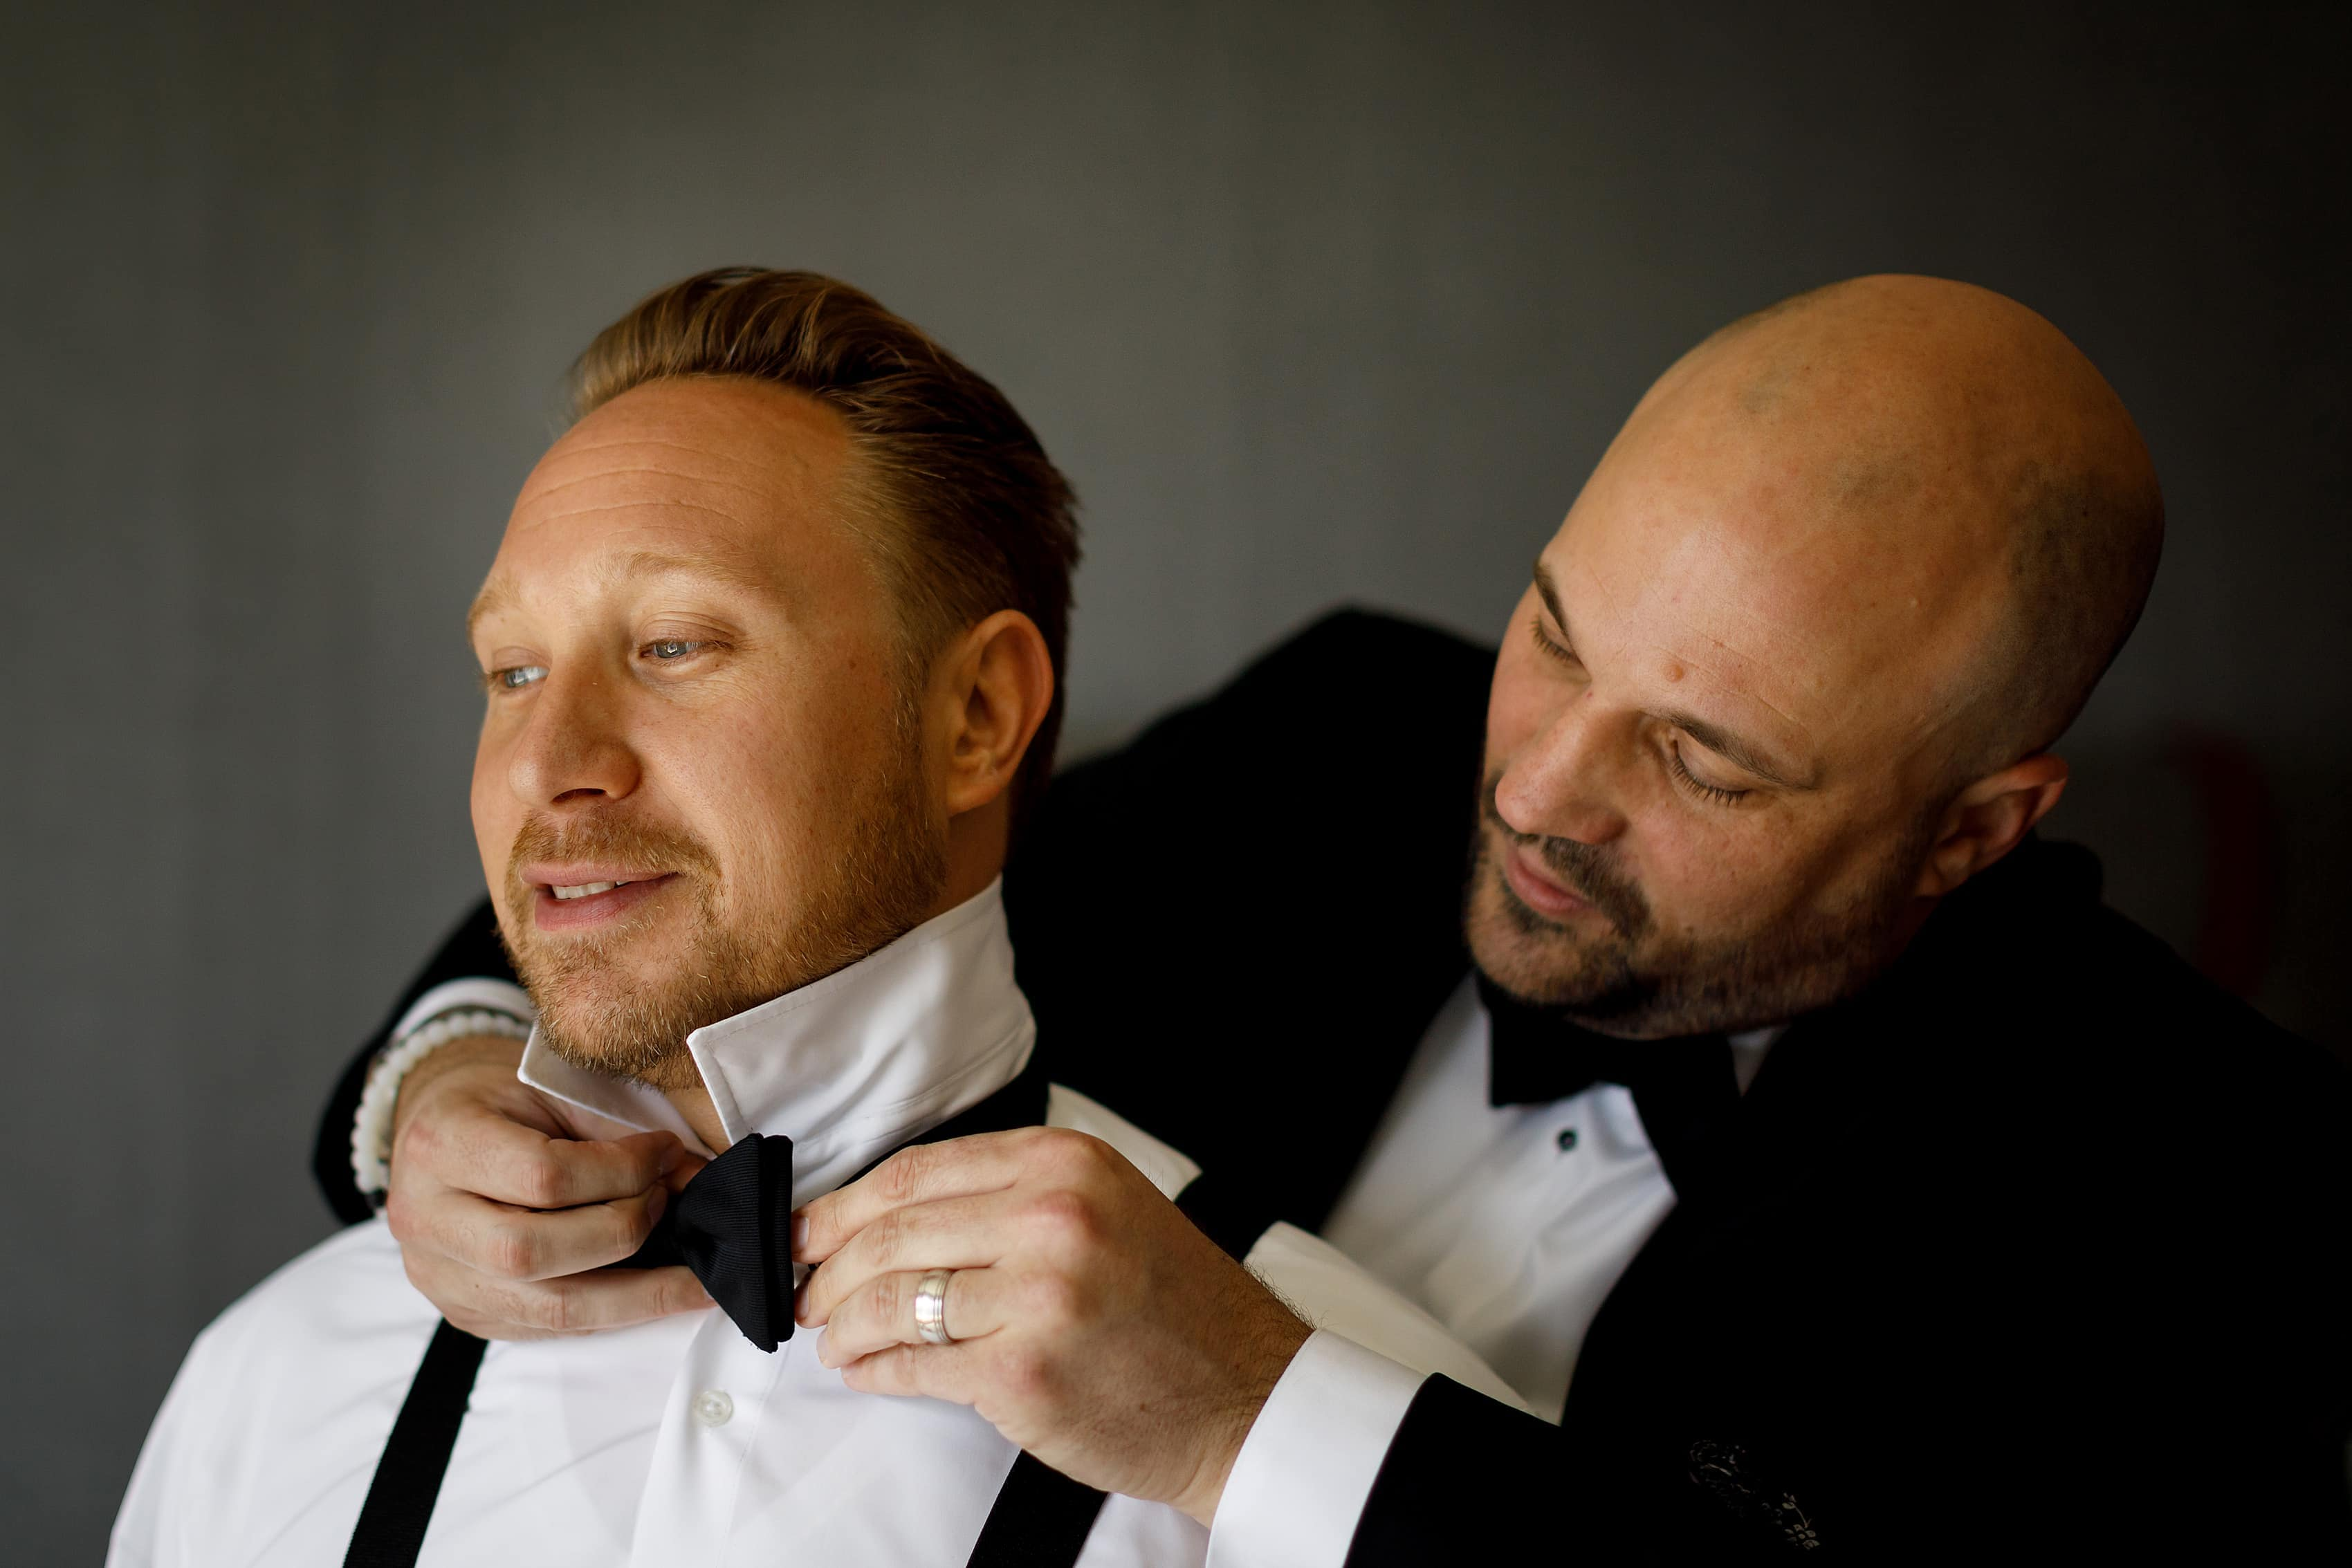 groomsmen helps groom with bowtie while getting ready for wedding